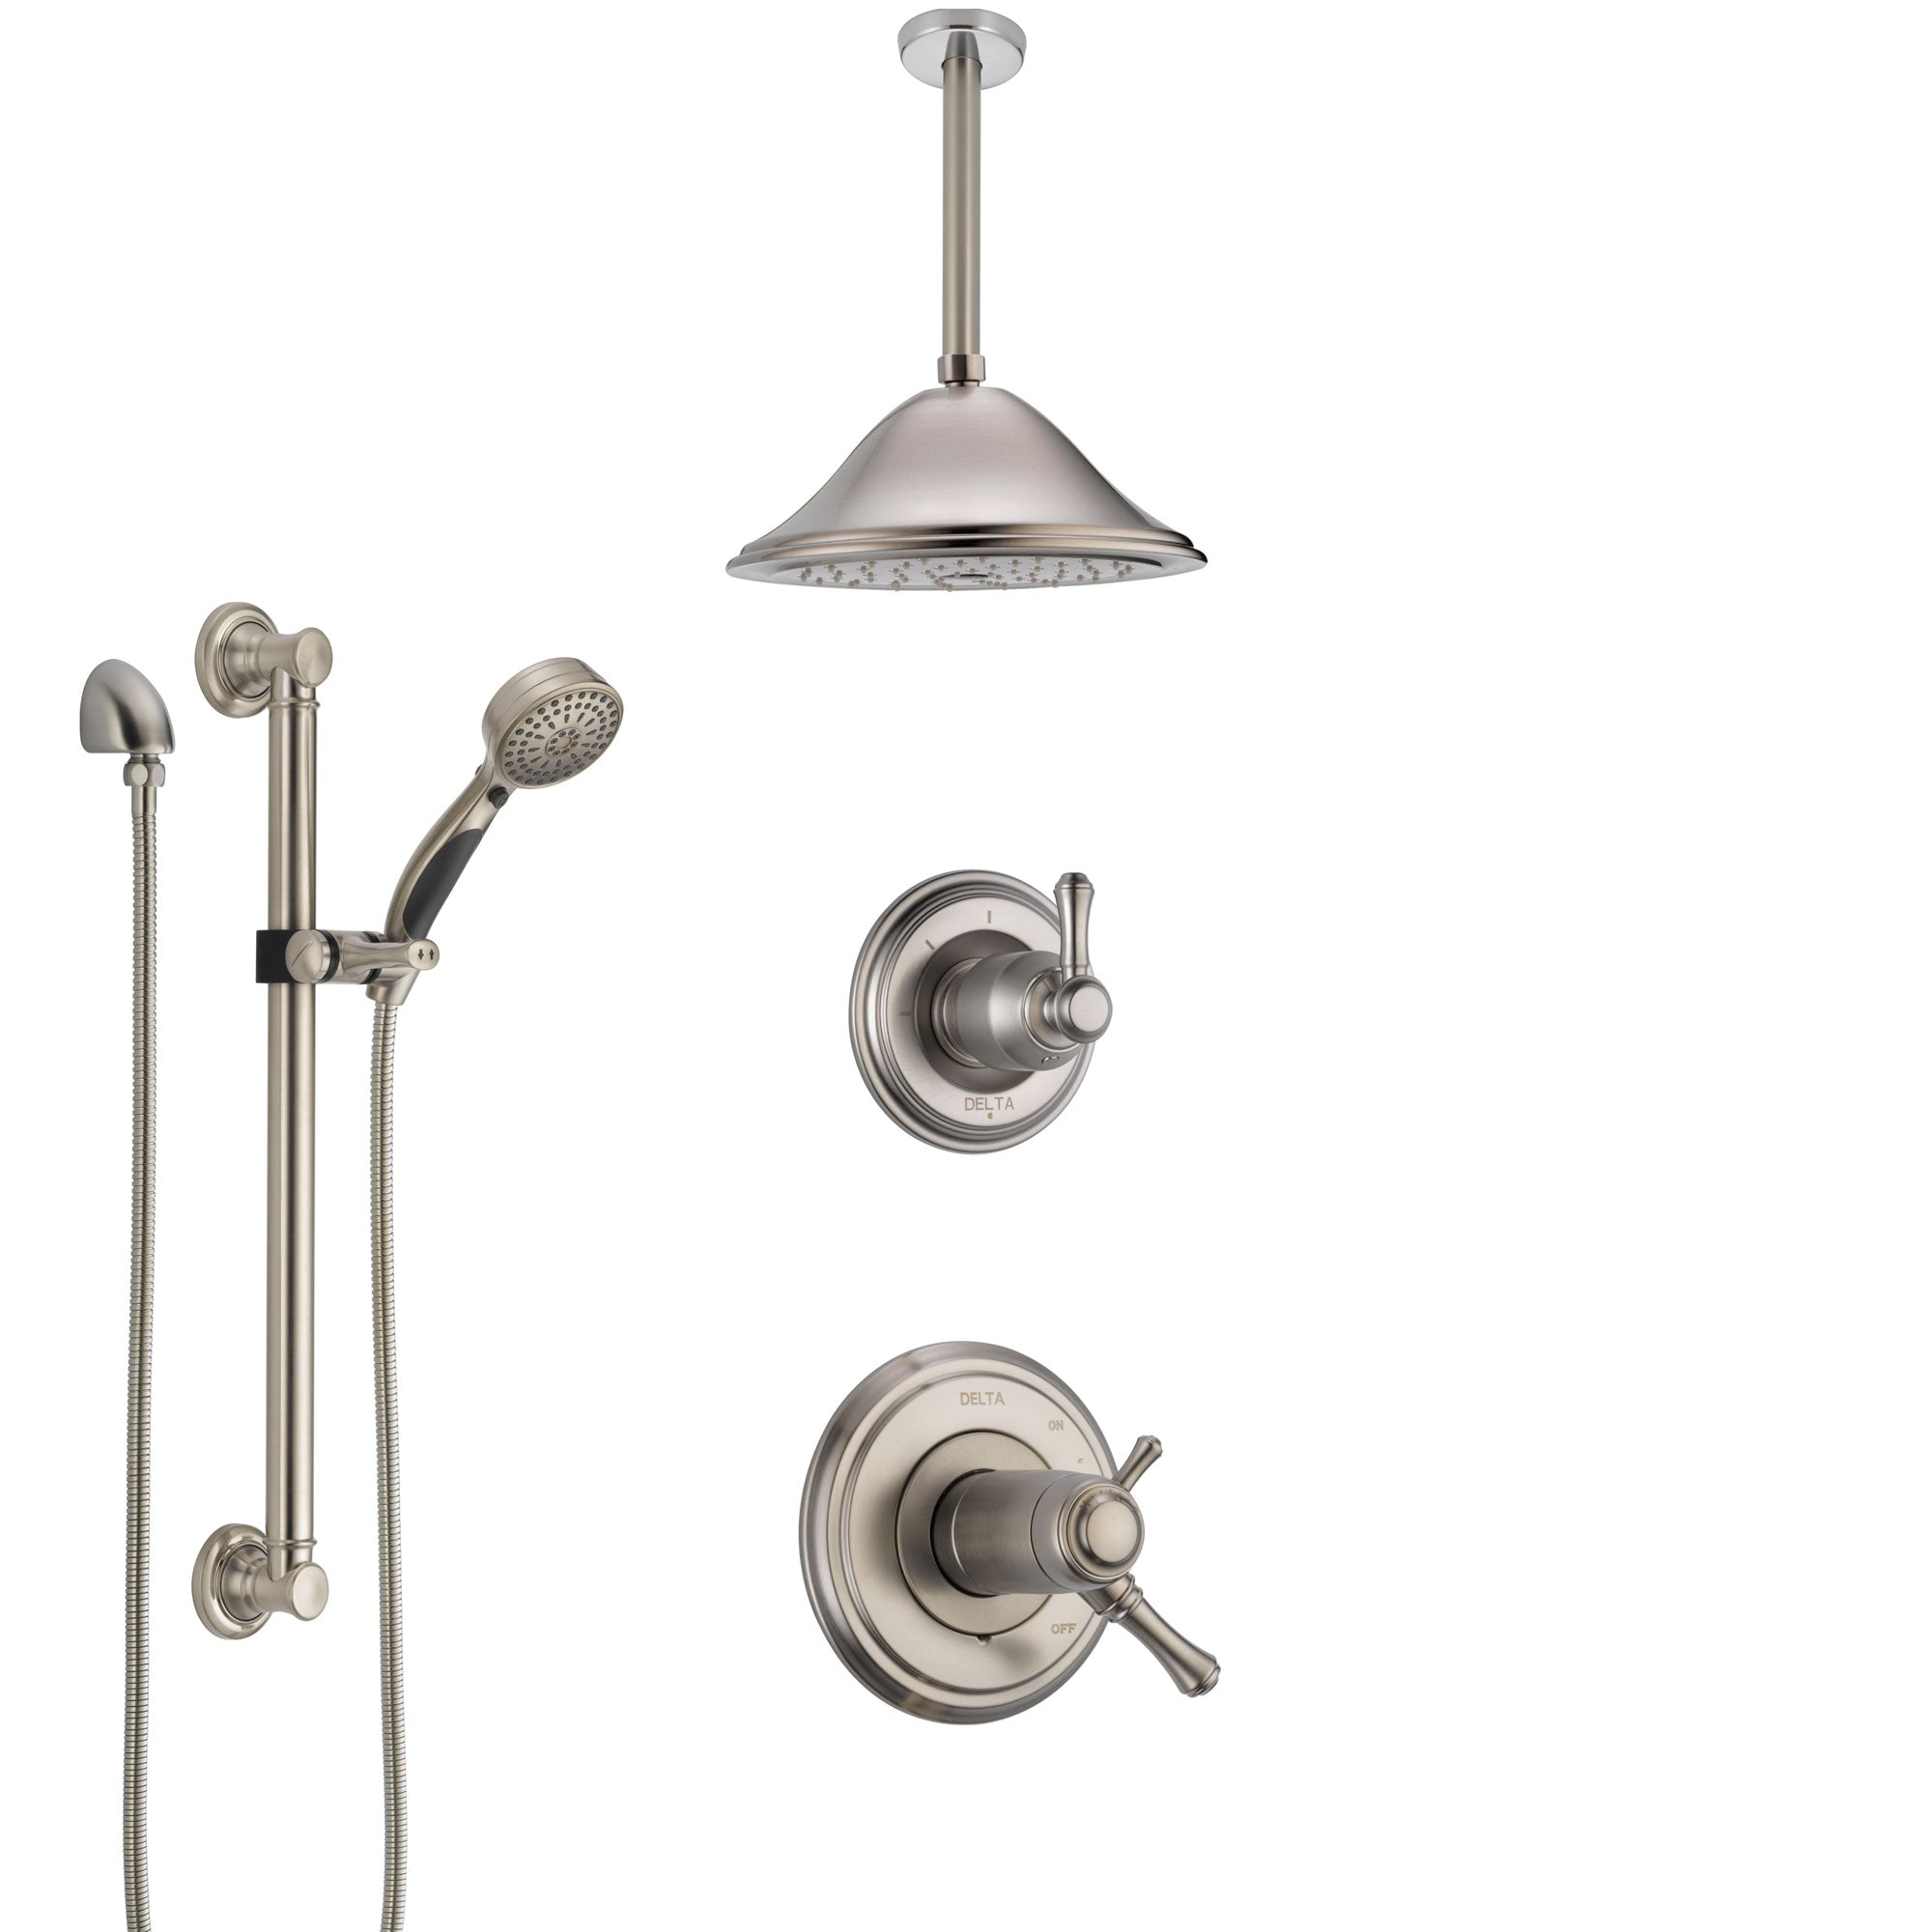 Delta Cassidy Dual Thermostatic Control Stainless Steel Finish Shower System, Diverter, Ceiling Mount Showerhead, and Grab Bar Hand Shower SS17T972SS1